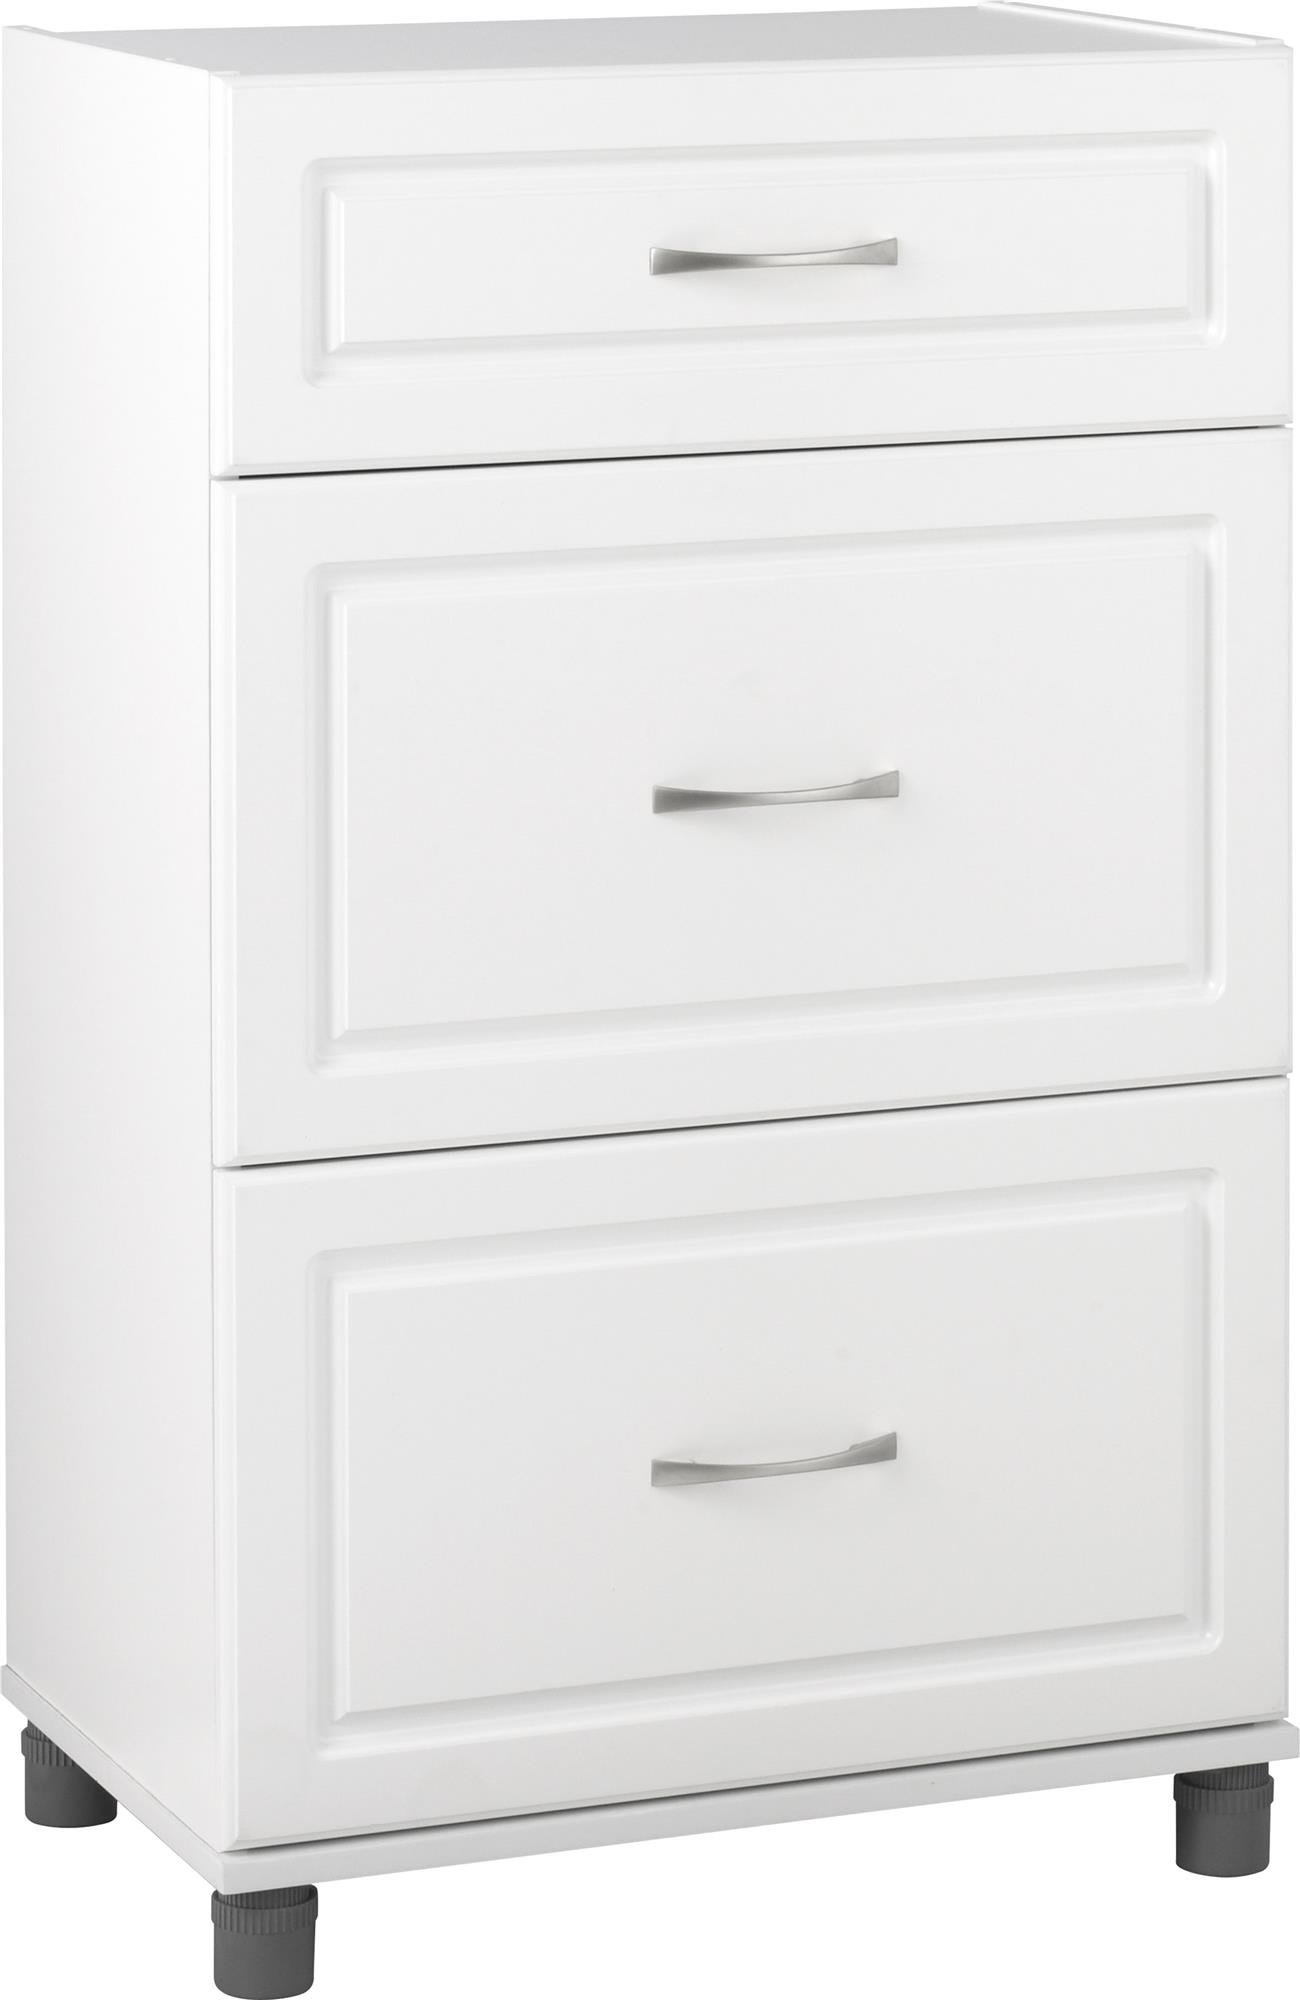 Ameriwood SystemBuild Kendall 24'' 3 Drawer Base Cabinet, White Stipple